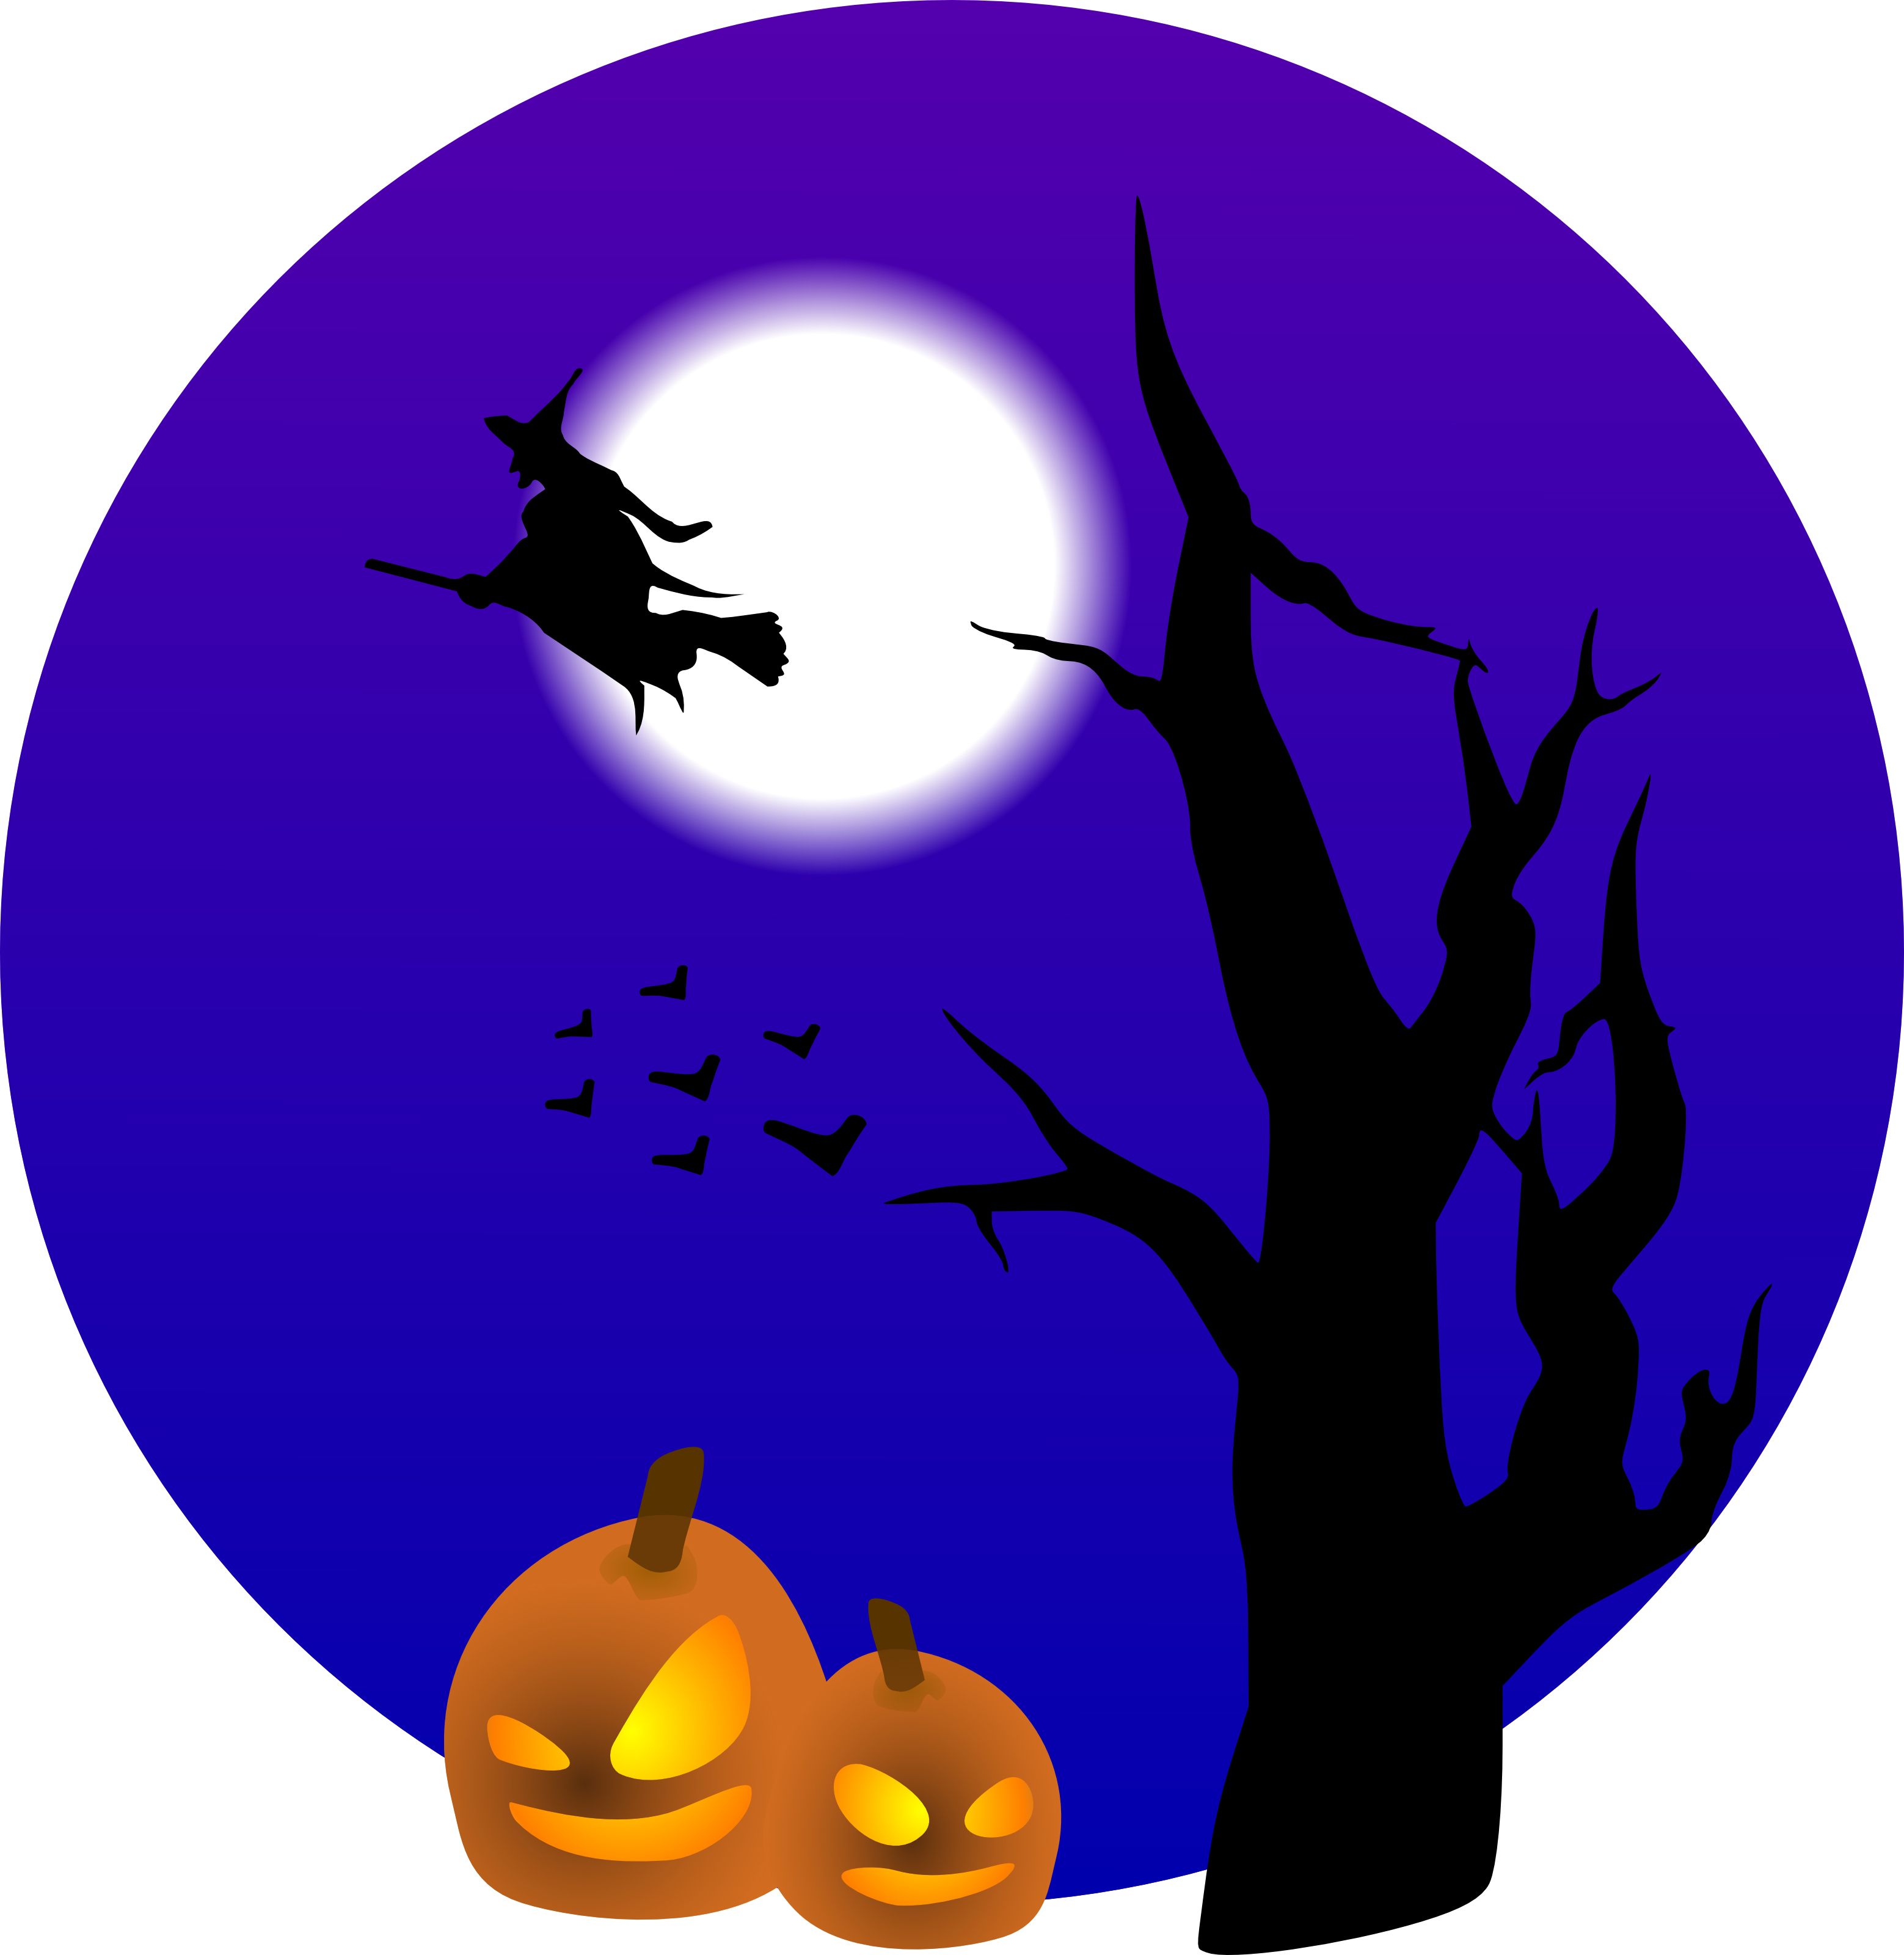 Halloween free clipart pictures graphic Halloween Pumpkin Clip Art | Clipart Panda - Free Clipart Images graphic